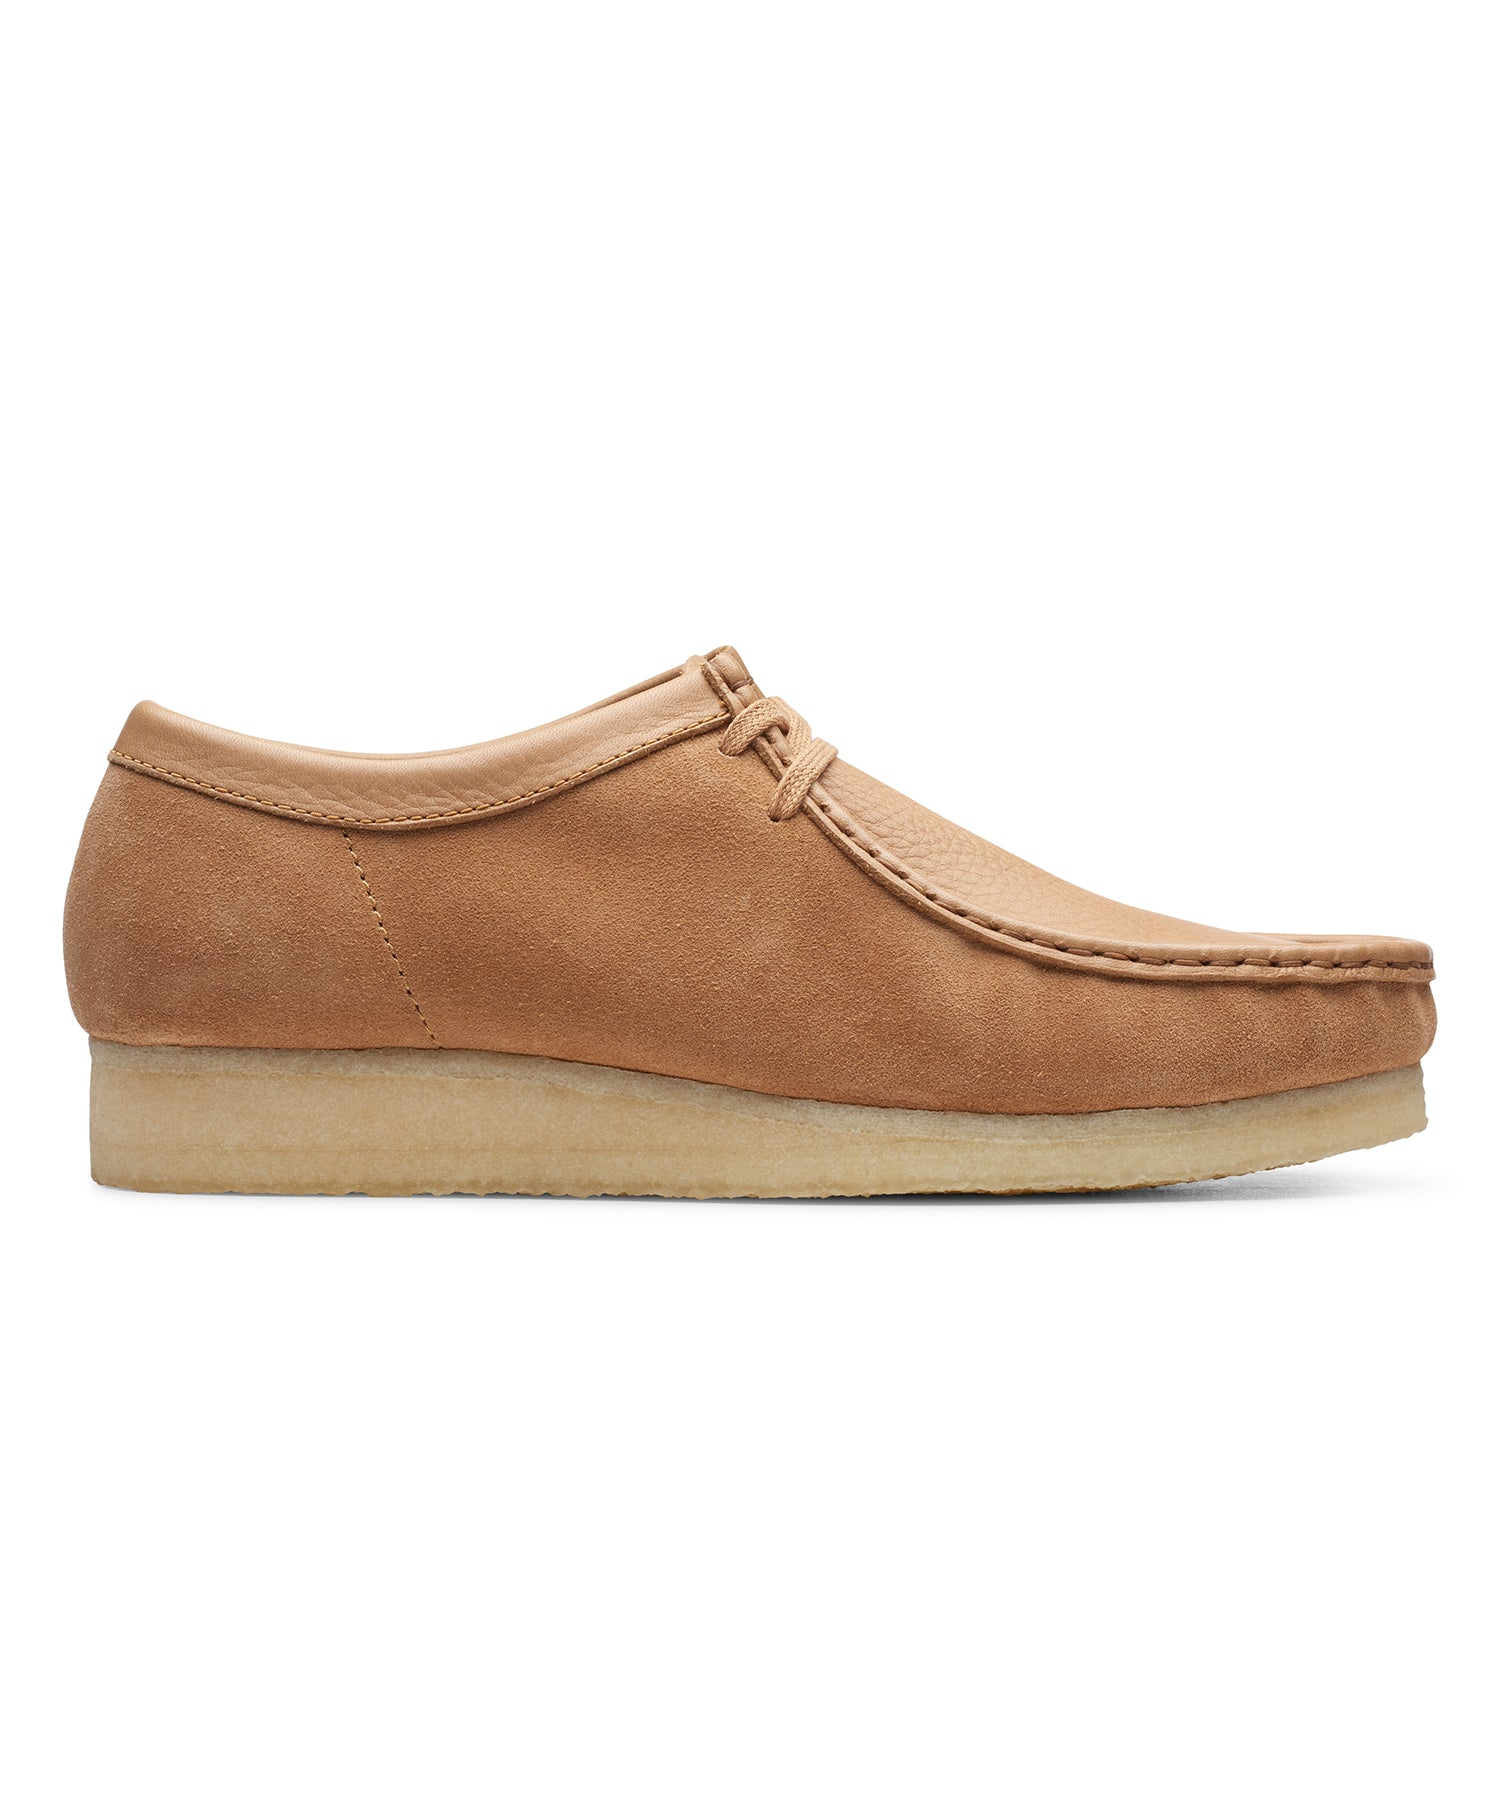 Clarks Wallabee Low Light Tan Combi